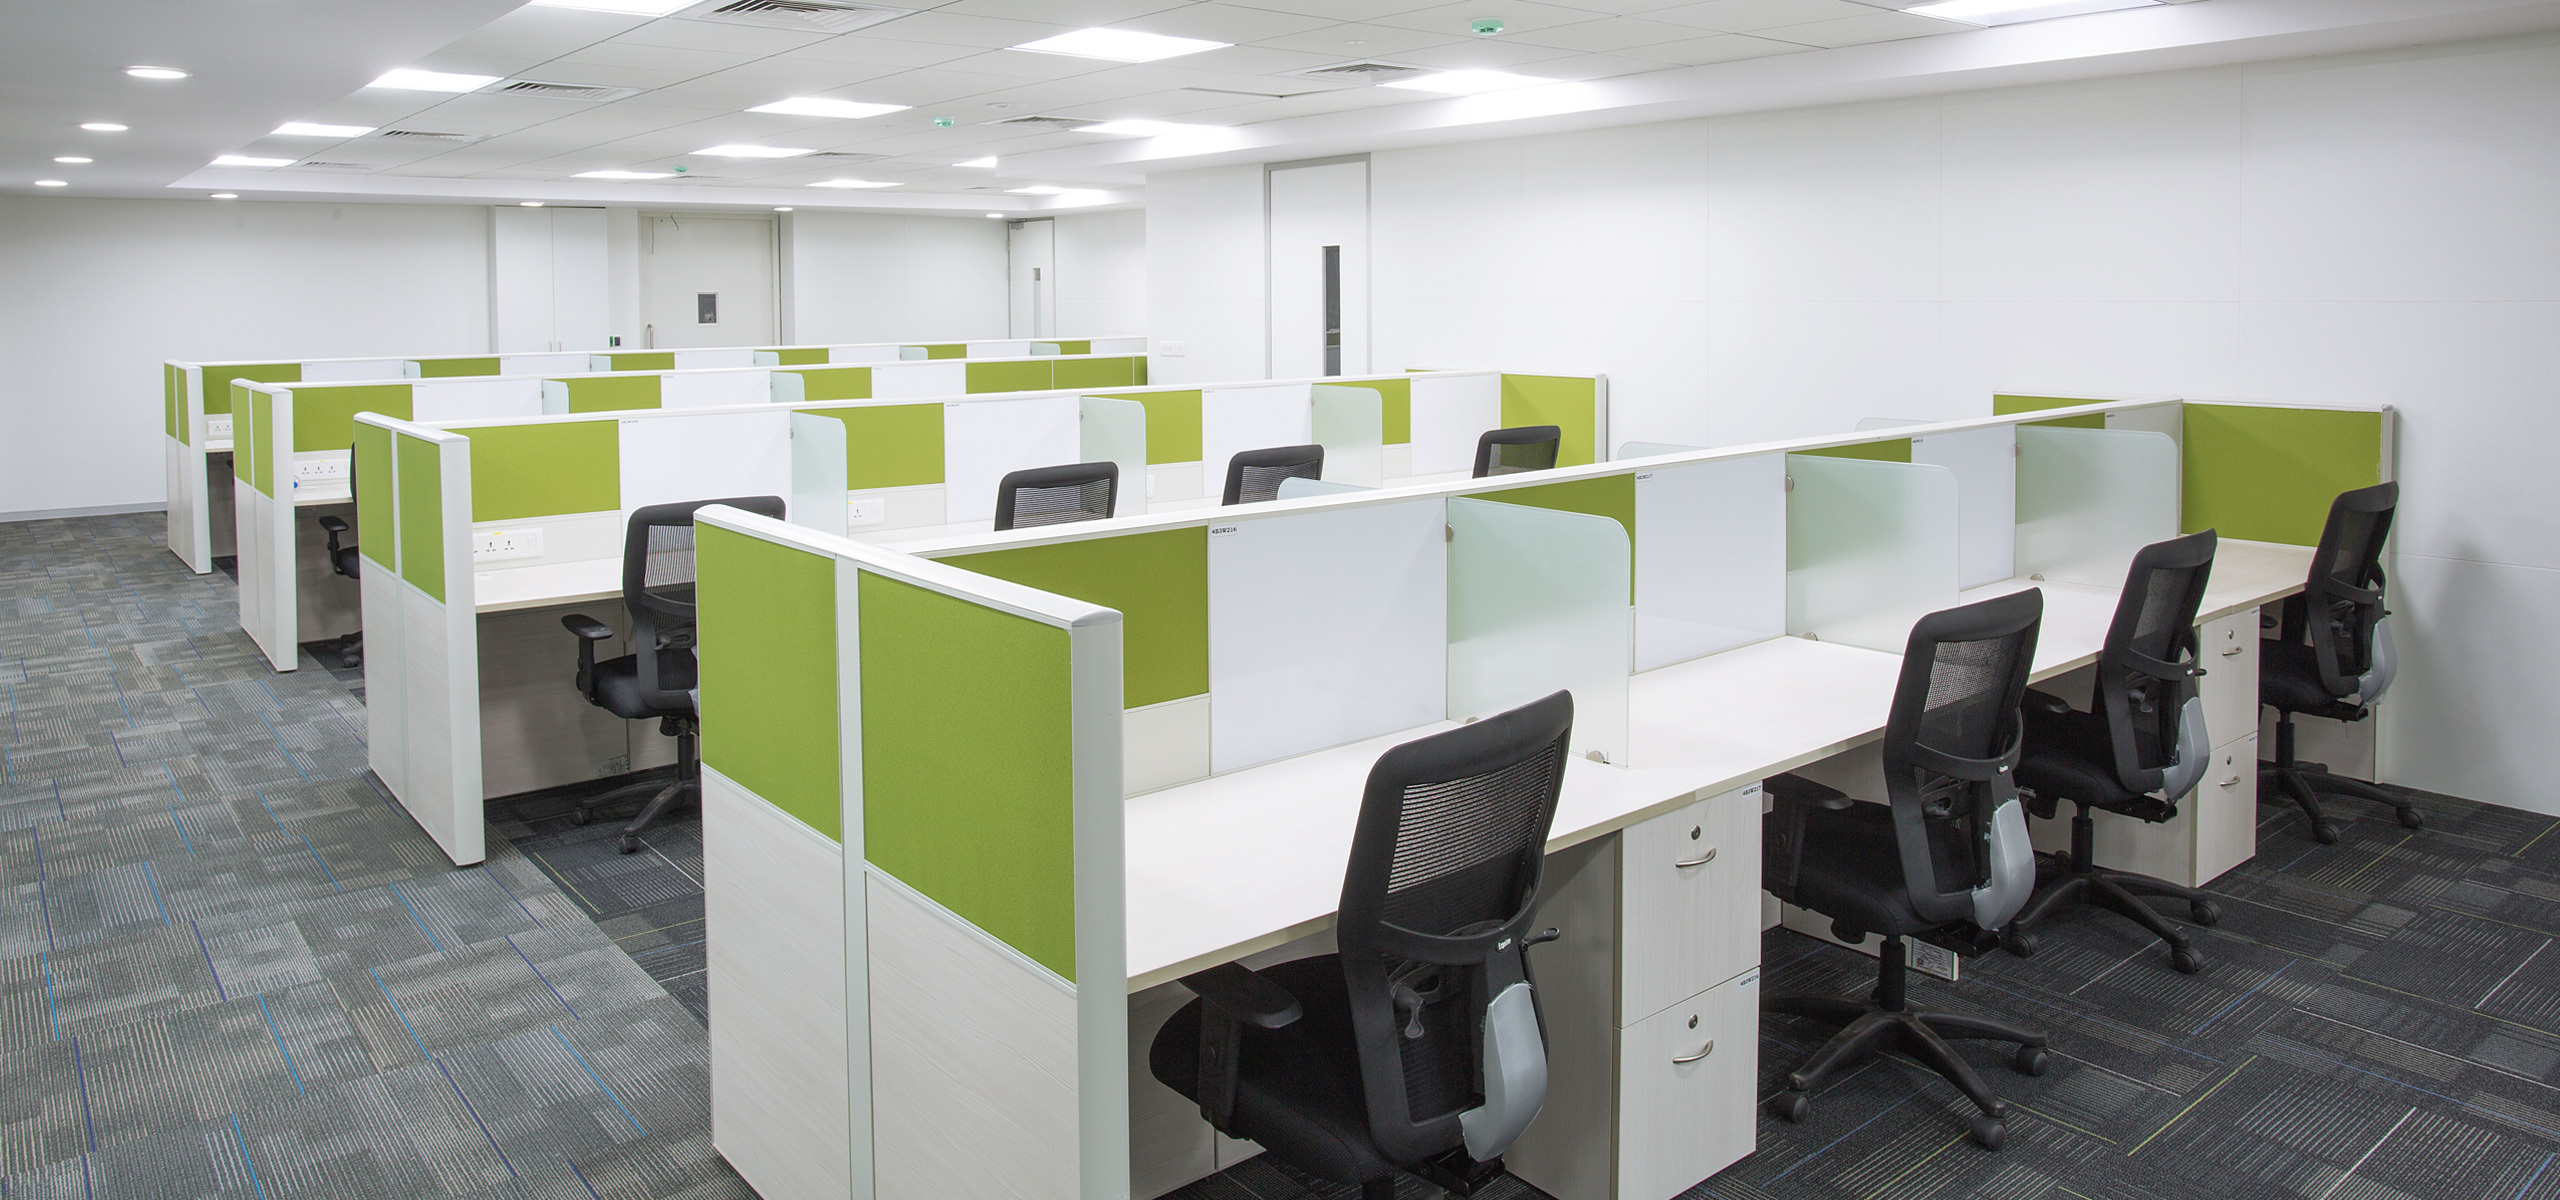 Office work station and cubicles